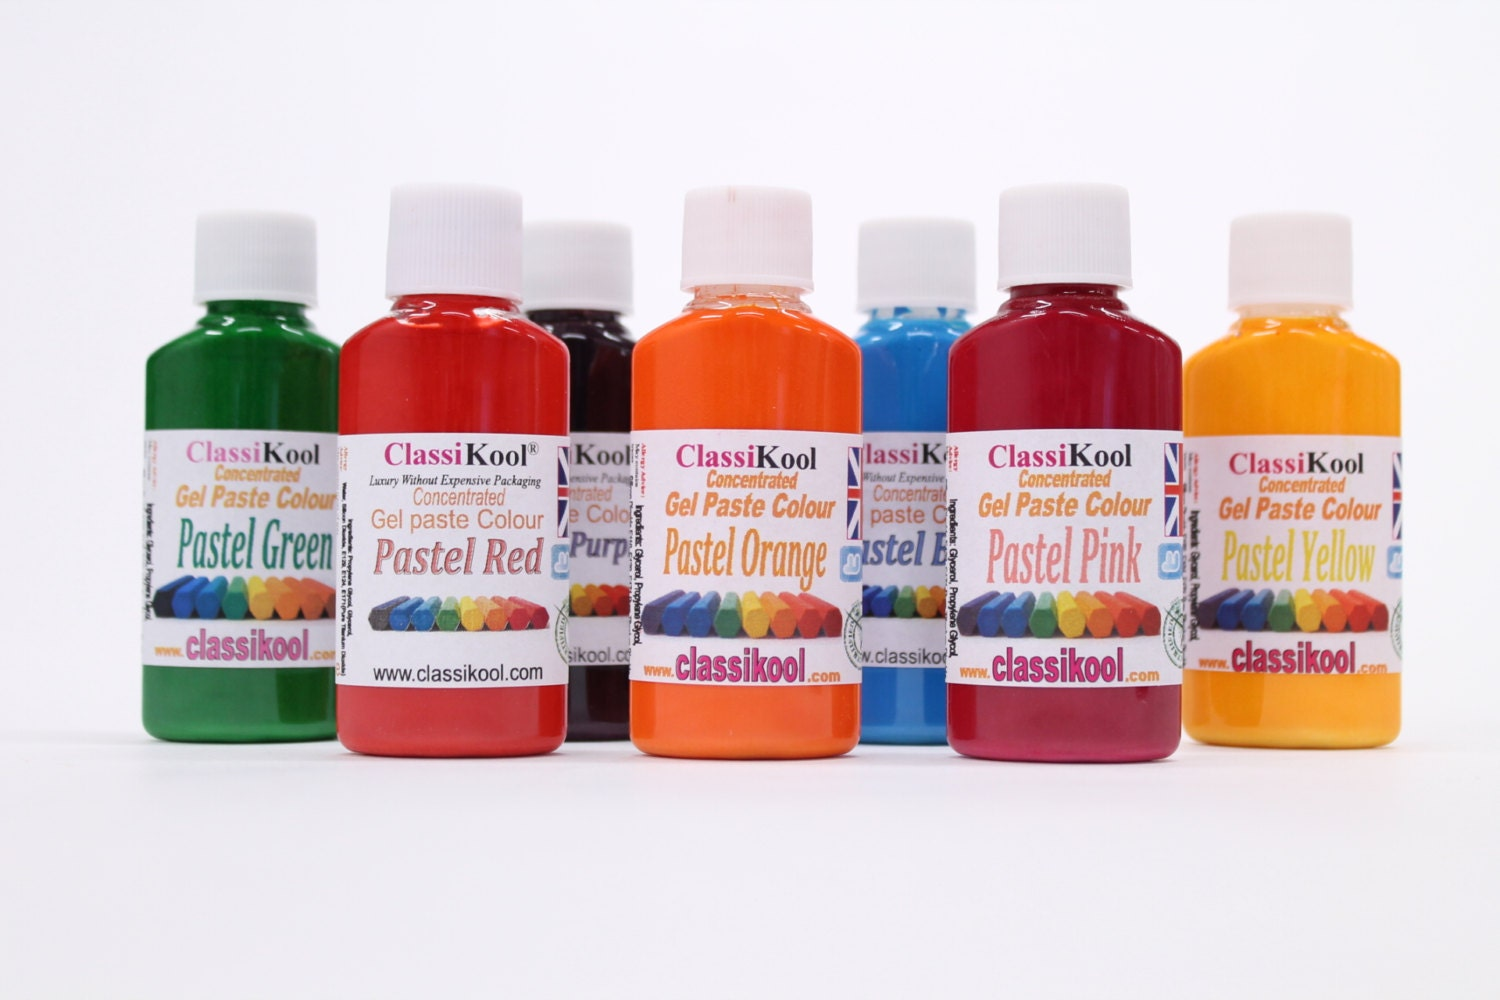 sold by classikool - Pastel Food Coloring